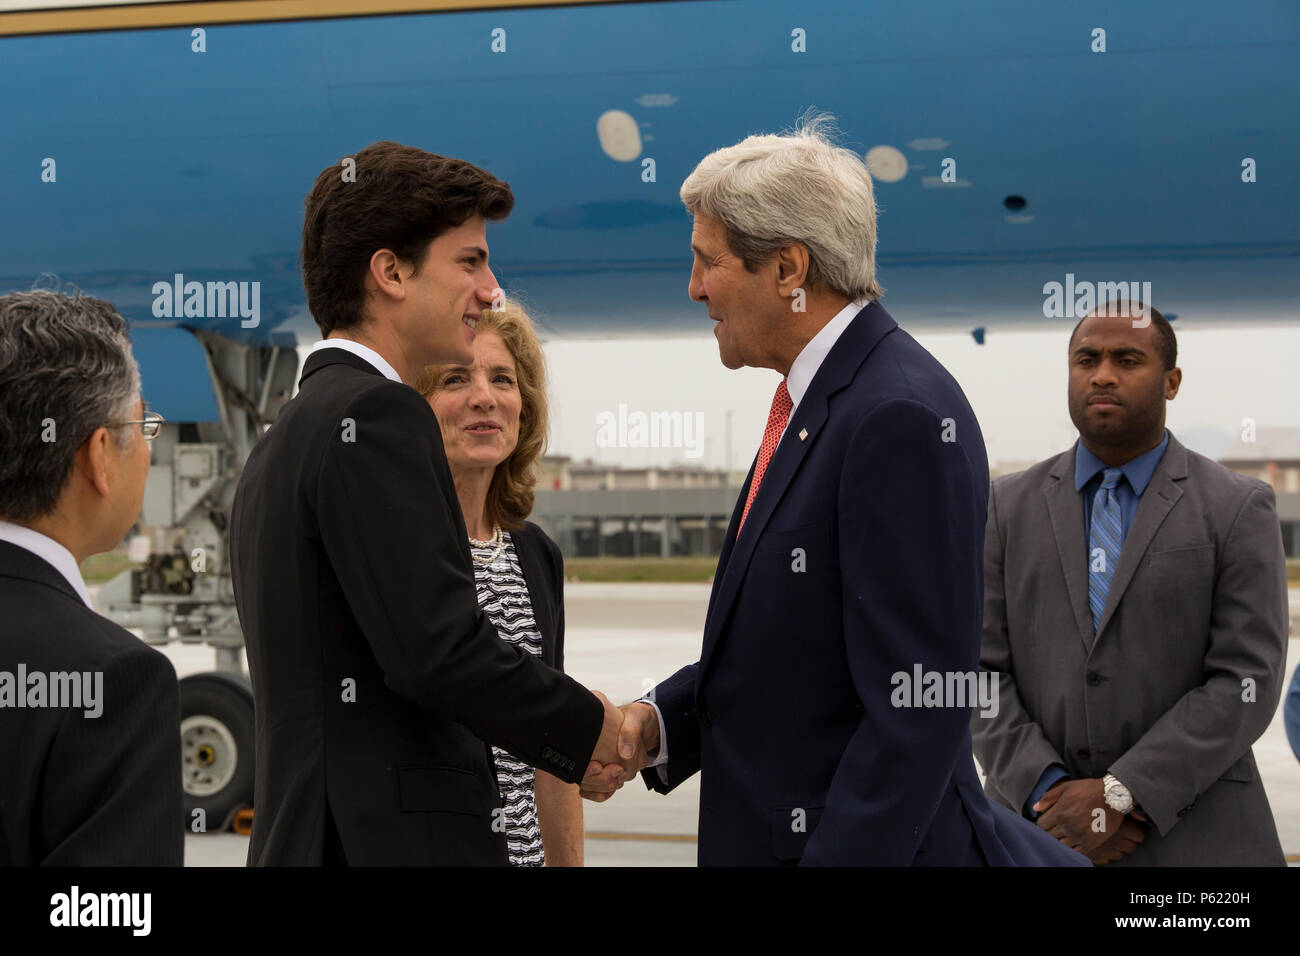 John f kerry the us secretary of state shakes hands with jack john f kerry the us secretary of state shakes hands with jack schlossberg son of caroline bouvier kennedy us ambassador to japan while visiting altavistaventures Gallery